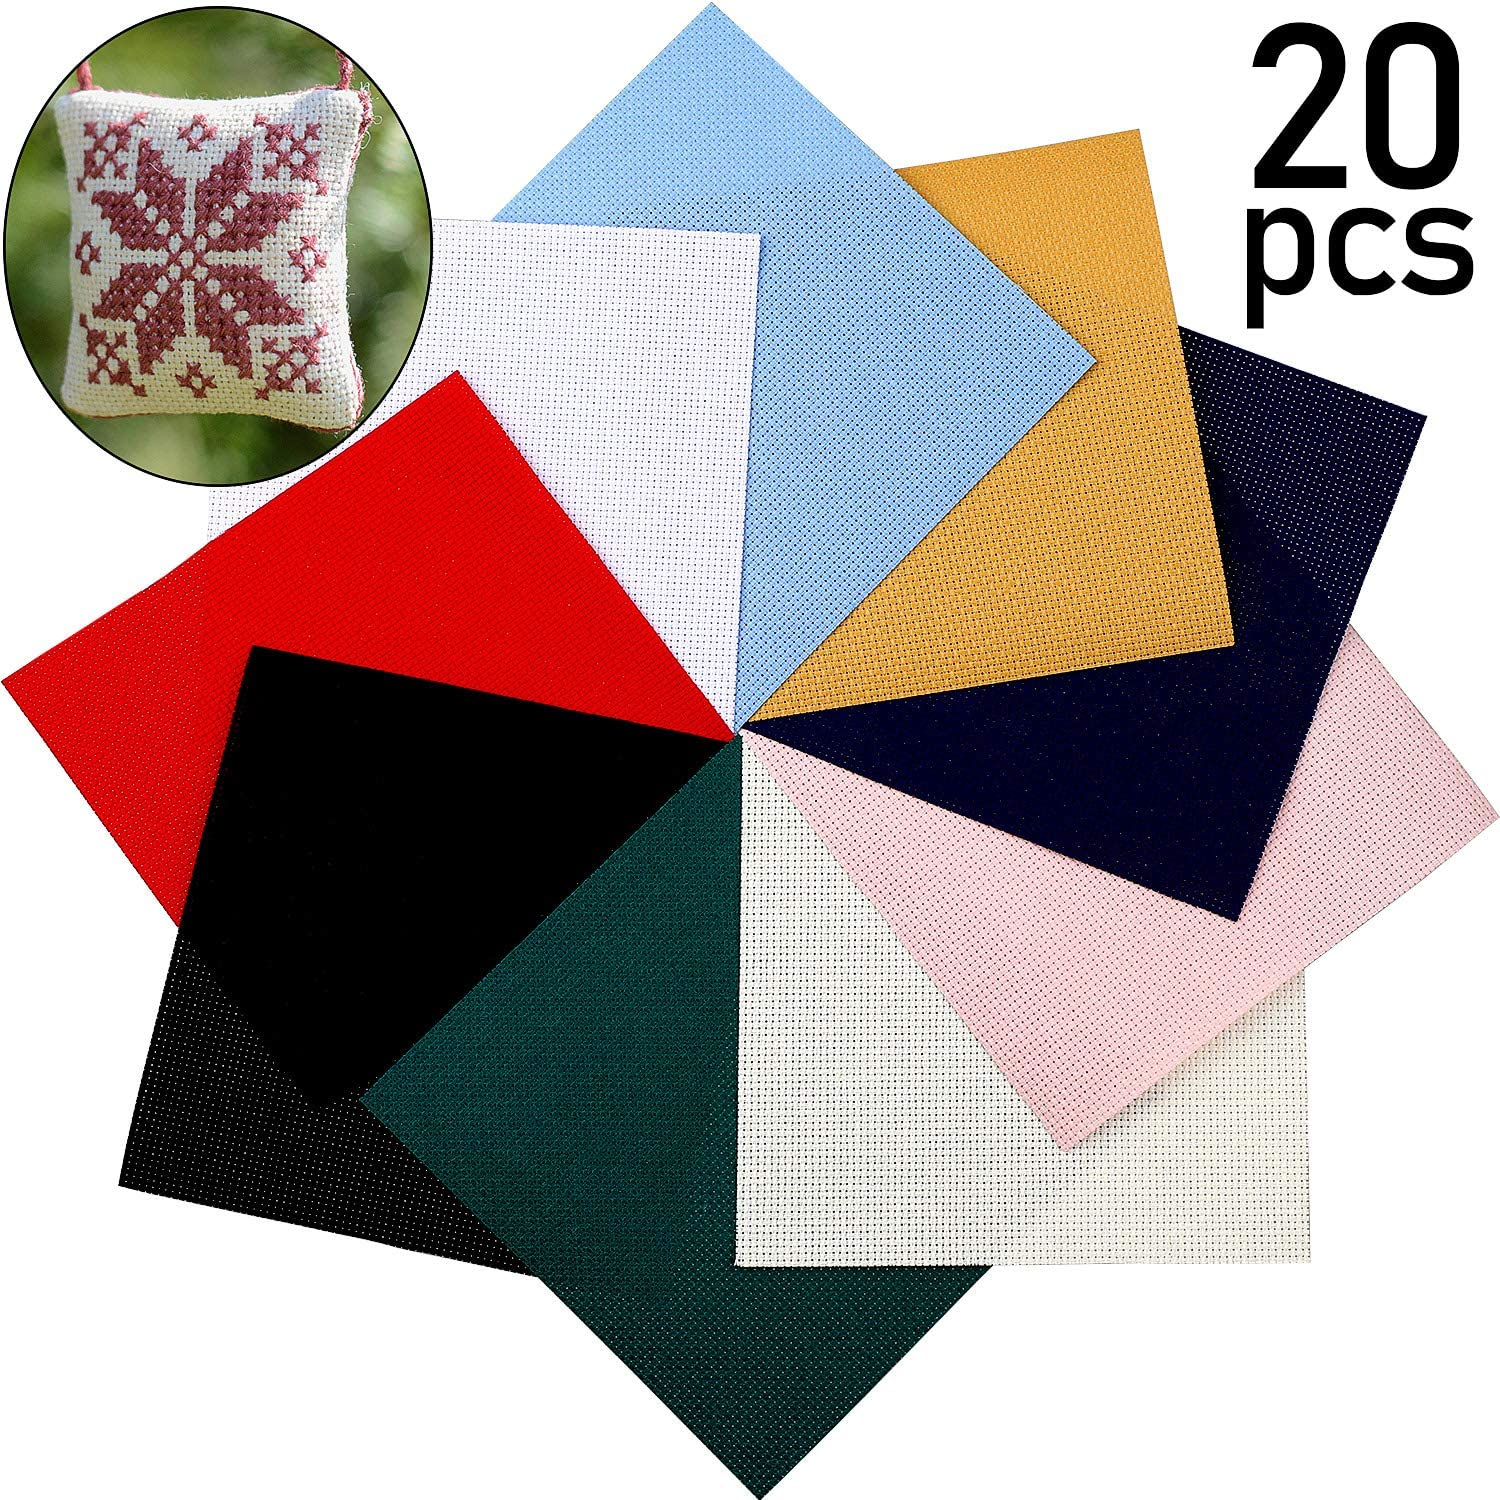 10 Colors 20 Pieces Cross Stitch Fabric DIY Cross Stitch Cloth 5.9 x 5.9 Inch Cross Stitch Embroidery Fabric for DIY Art Craft Handwork